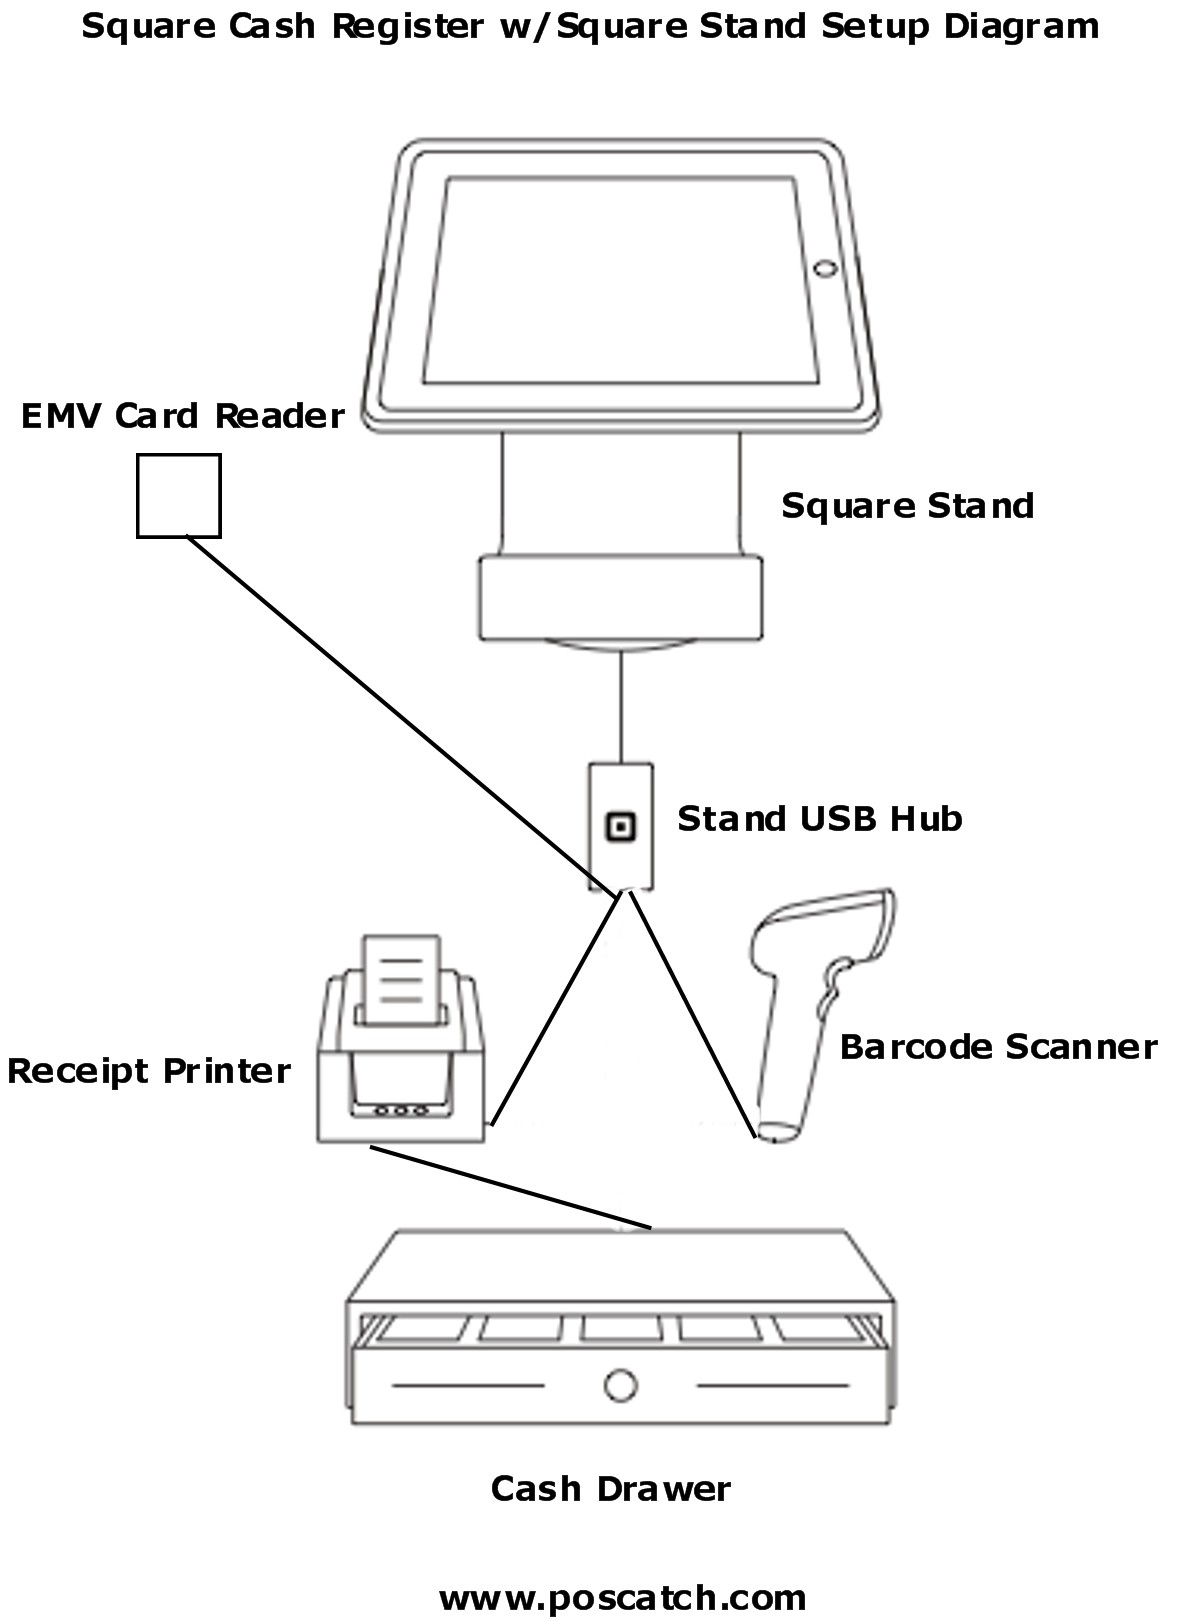 square-register-hardware-setup.2.jpg